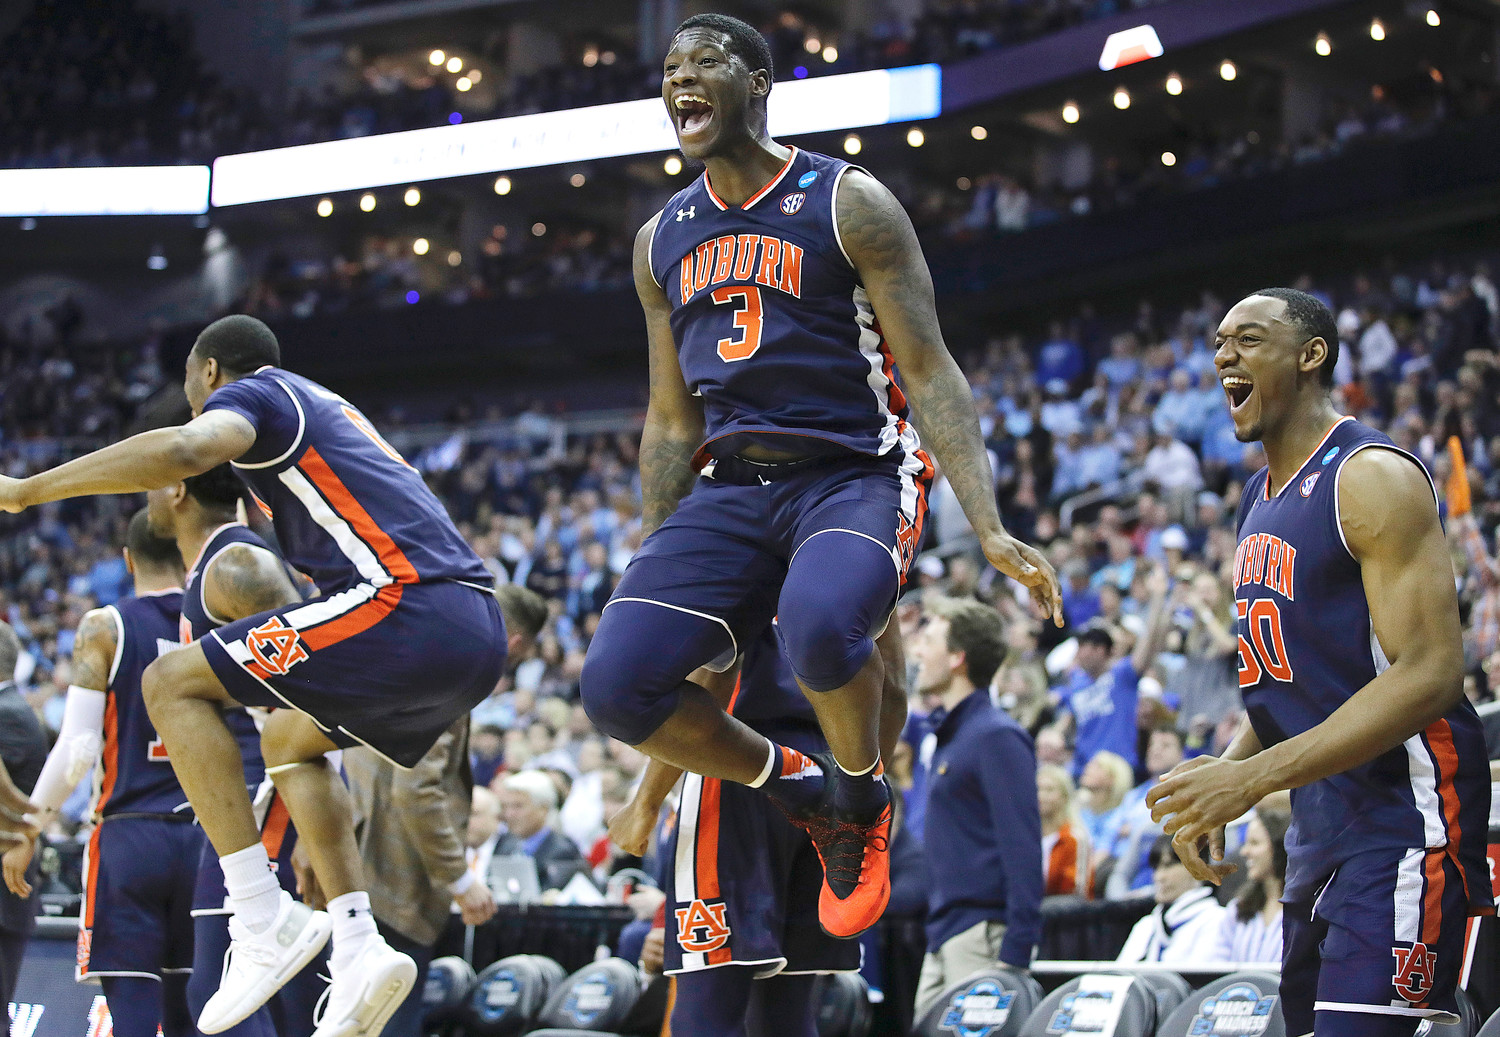 Auburn's Danjel Purifoy (3) and Austin Wiley (50) celebrate near the end of a men's NCAA tournament college basketball Midwest Regional semifinal game against North Carolina Friday in Kansas City, Mo. (